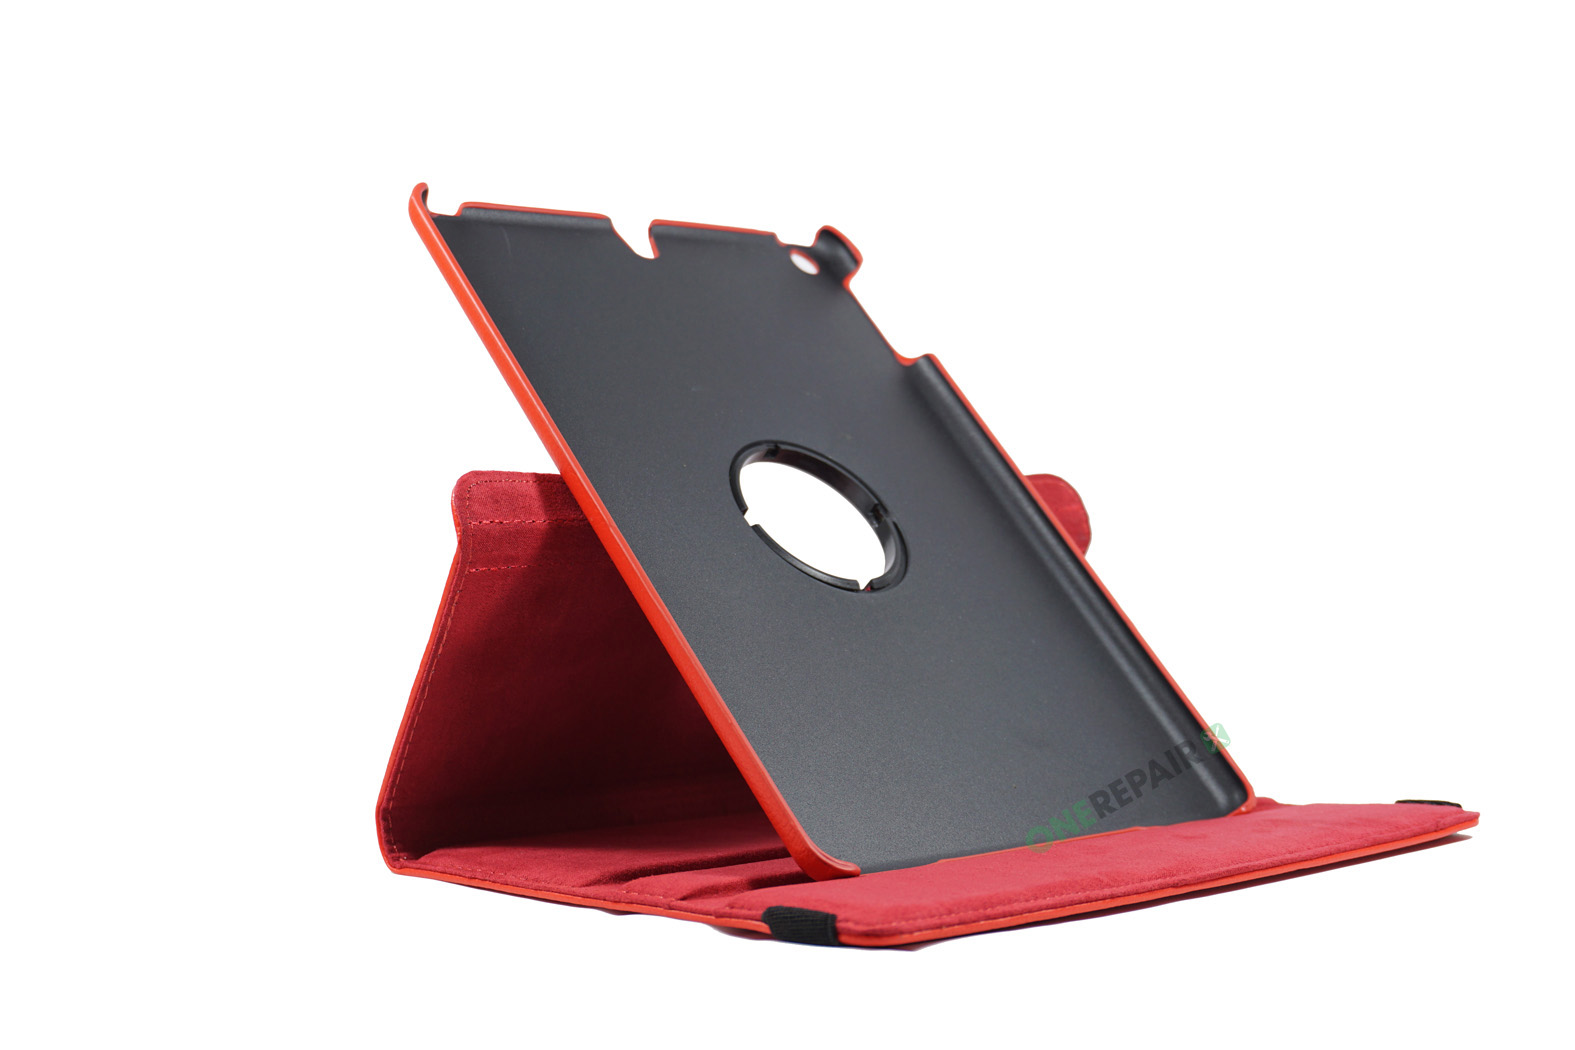 351016_iPad_Air_A1474_A1475_A1476_Flipcover_Cover_Roed_OneRepair_00005